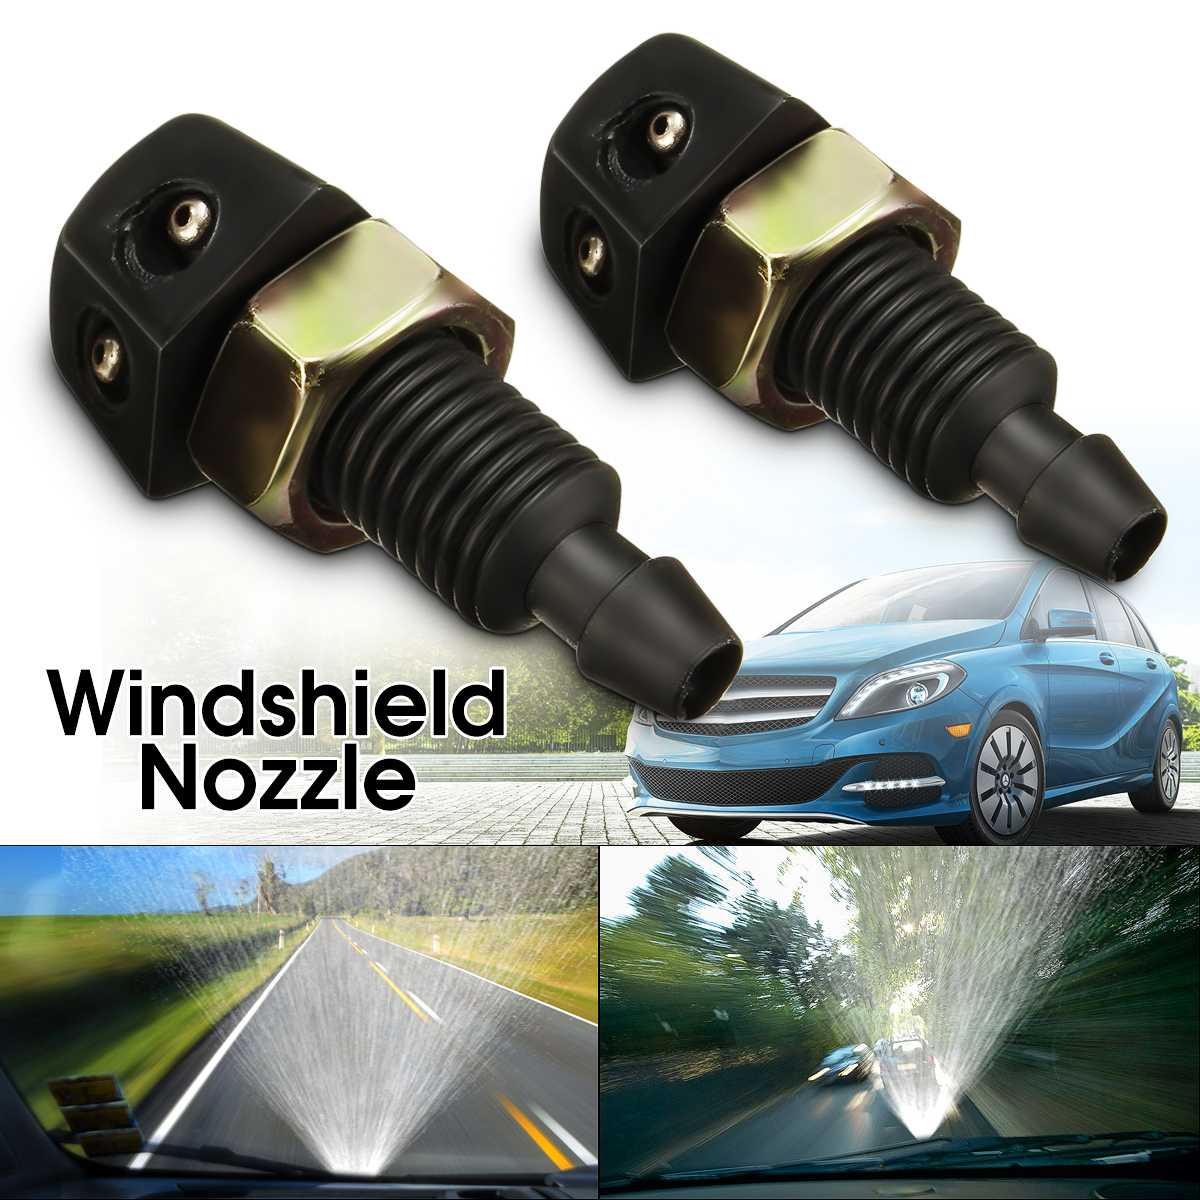 2 Pcs Universal Car Vehicle Front Windshield Washer Sprayer Nozzle Black Plastic High Quality Headlight Washer Spray Nozzle